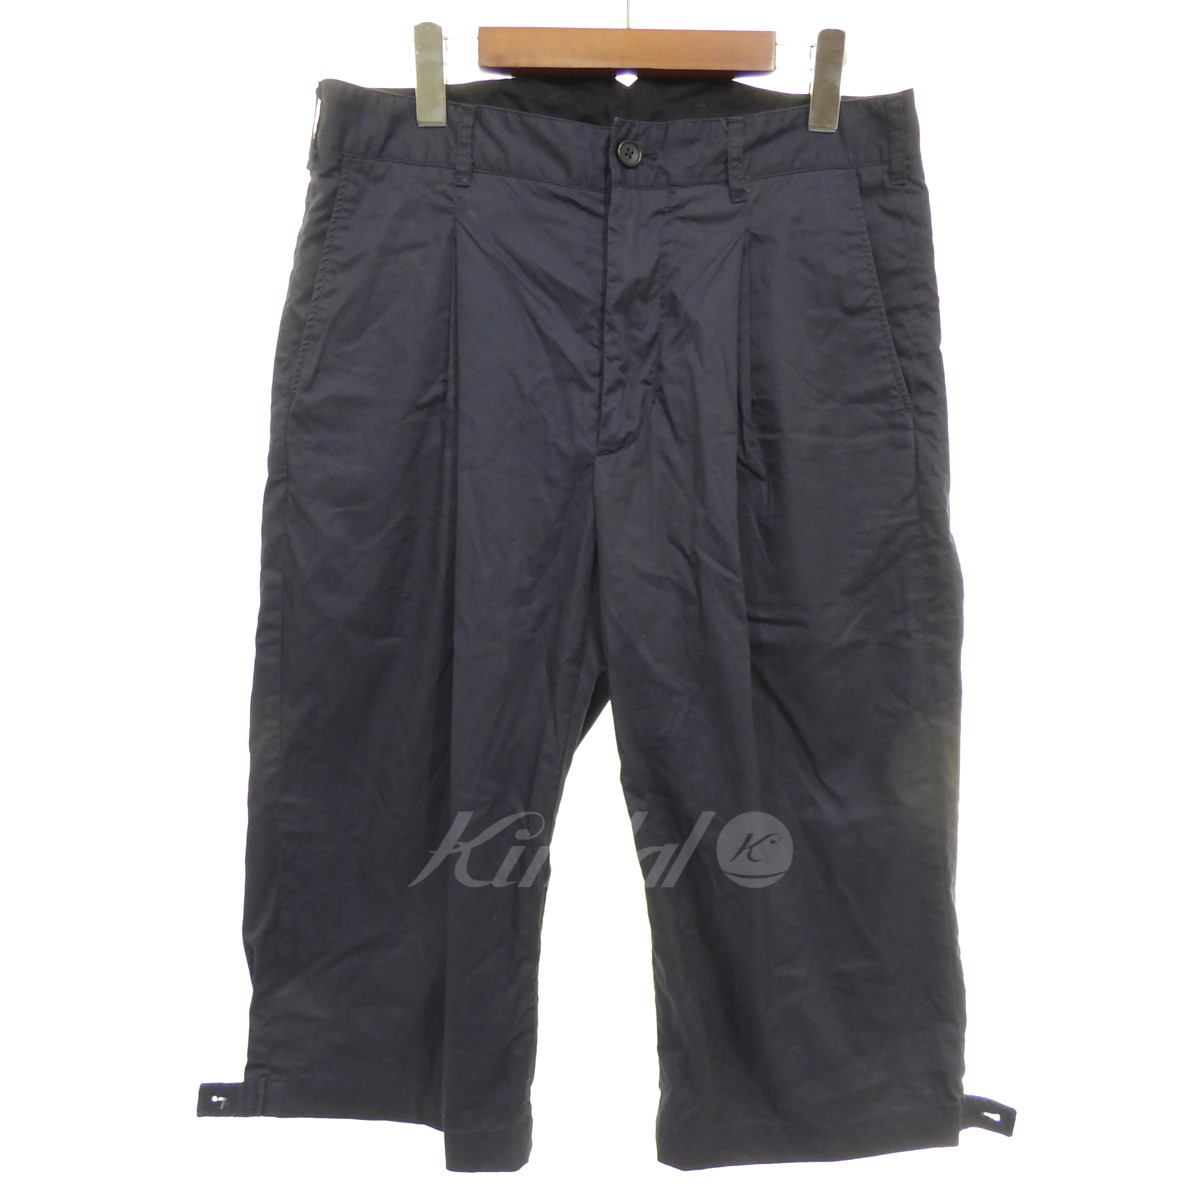 【中古】Engineered Garments WP Half Pant パンツ 【送料無料】 【086770】 【KIND1550】